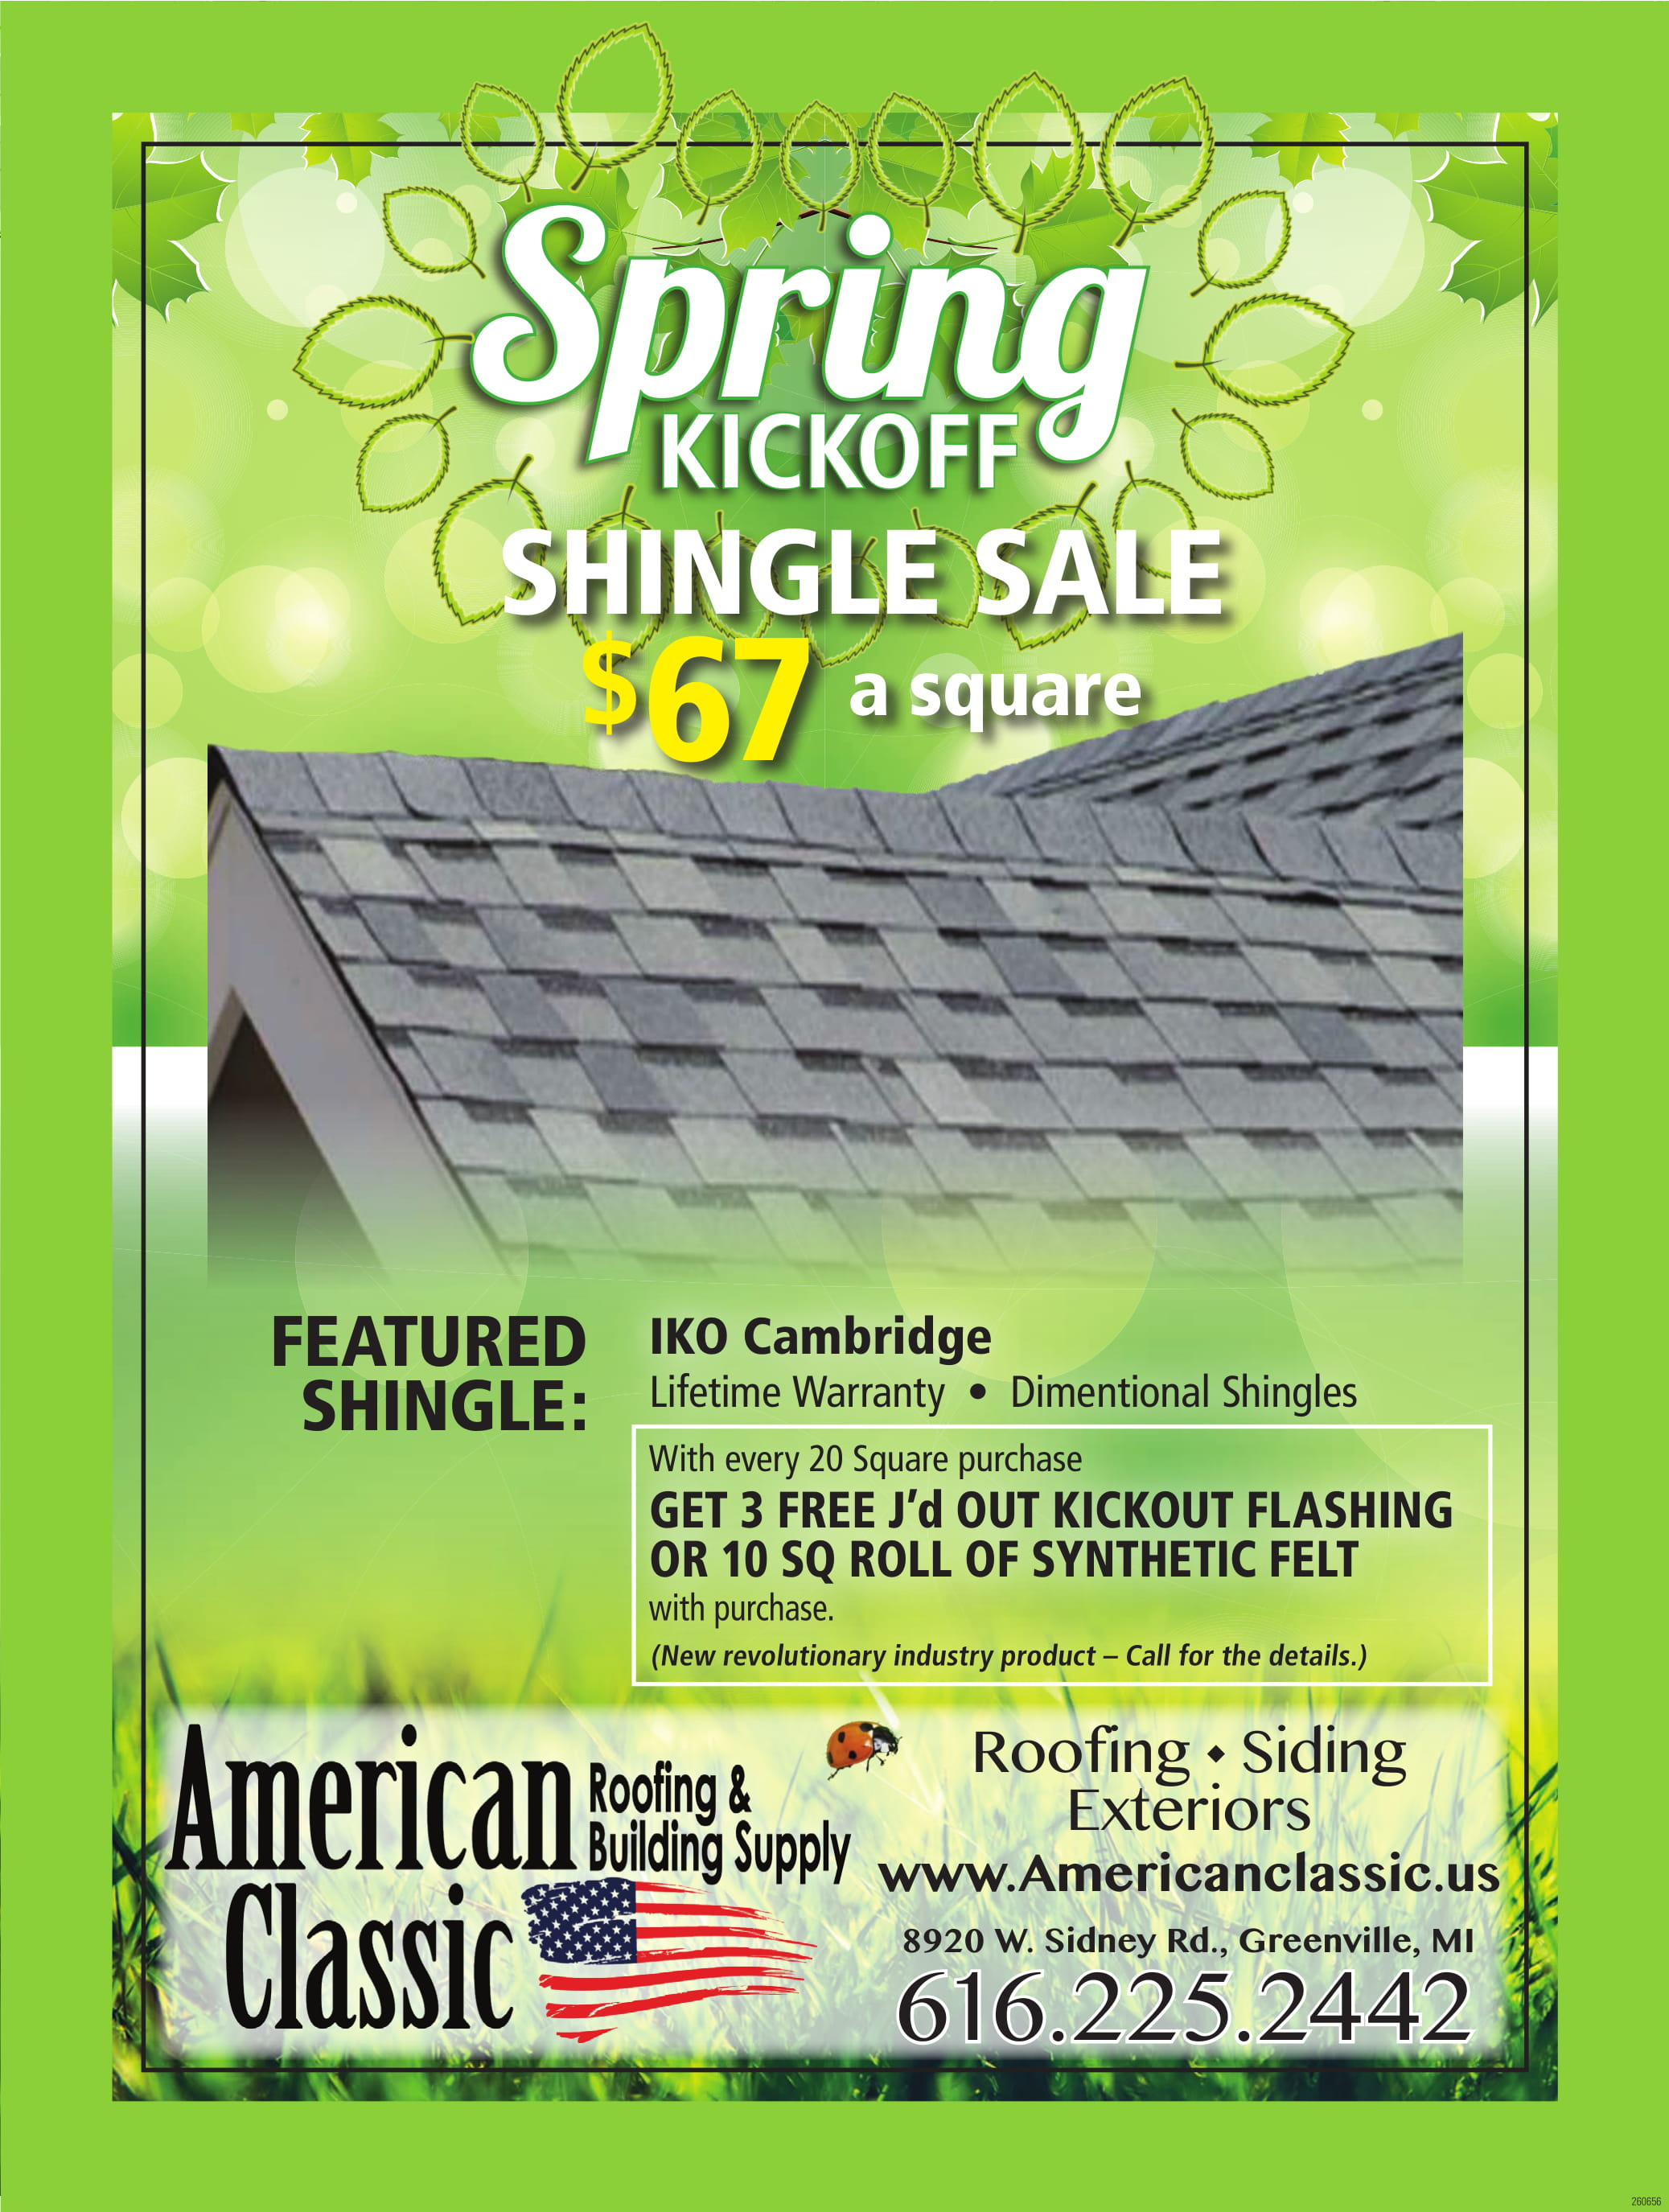 BLOG — American Classic Roofing & Building Supply